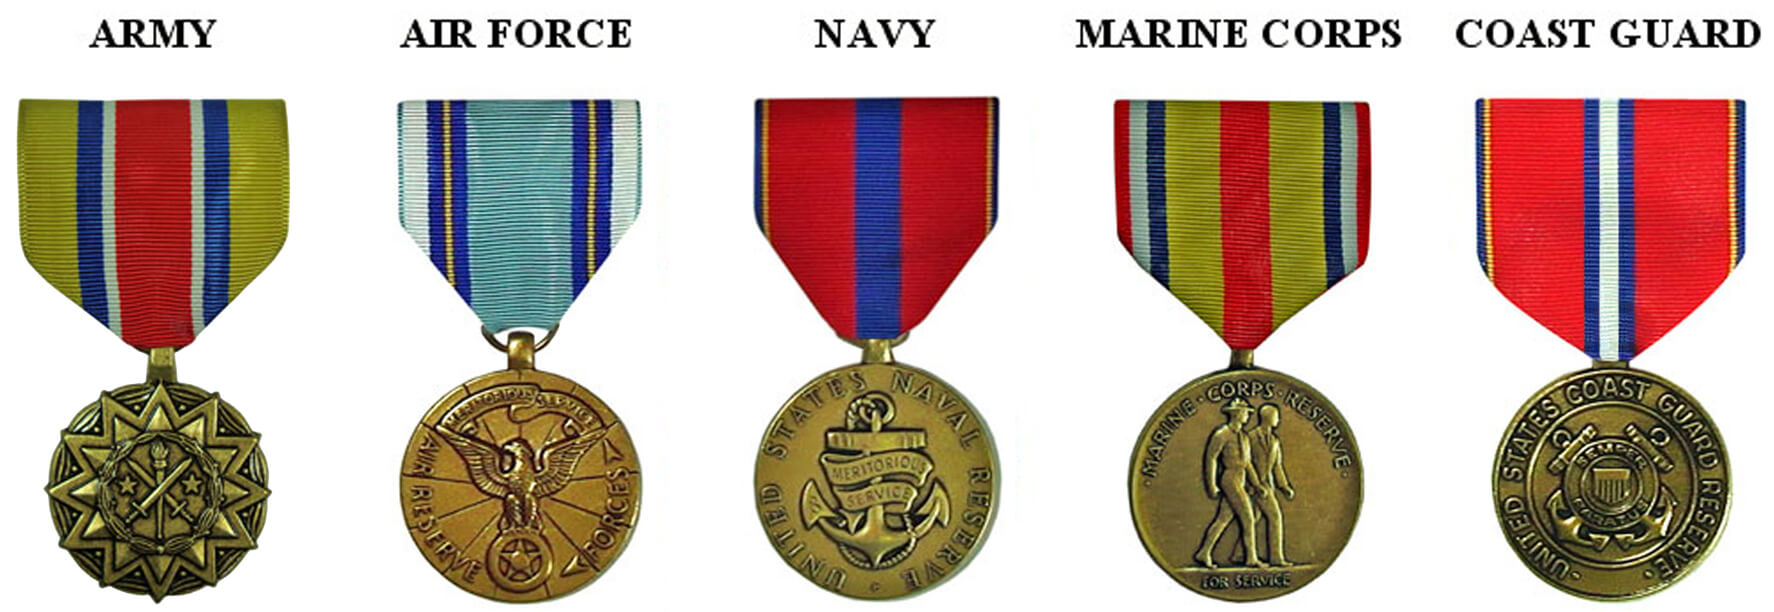 Reserve Good Conduct Medal - Wikipedia Regarding Army Good Conduct Medal Certificate Template